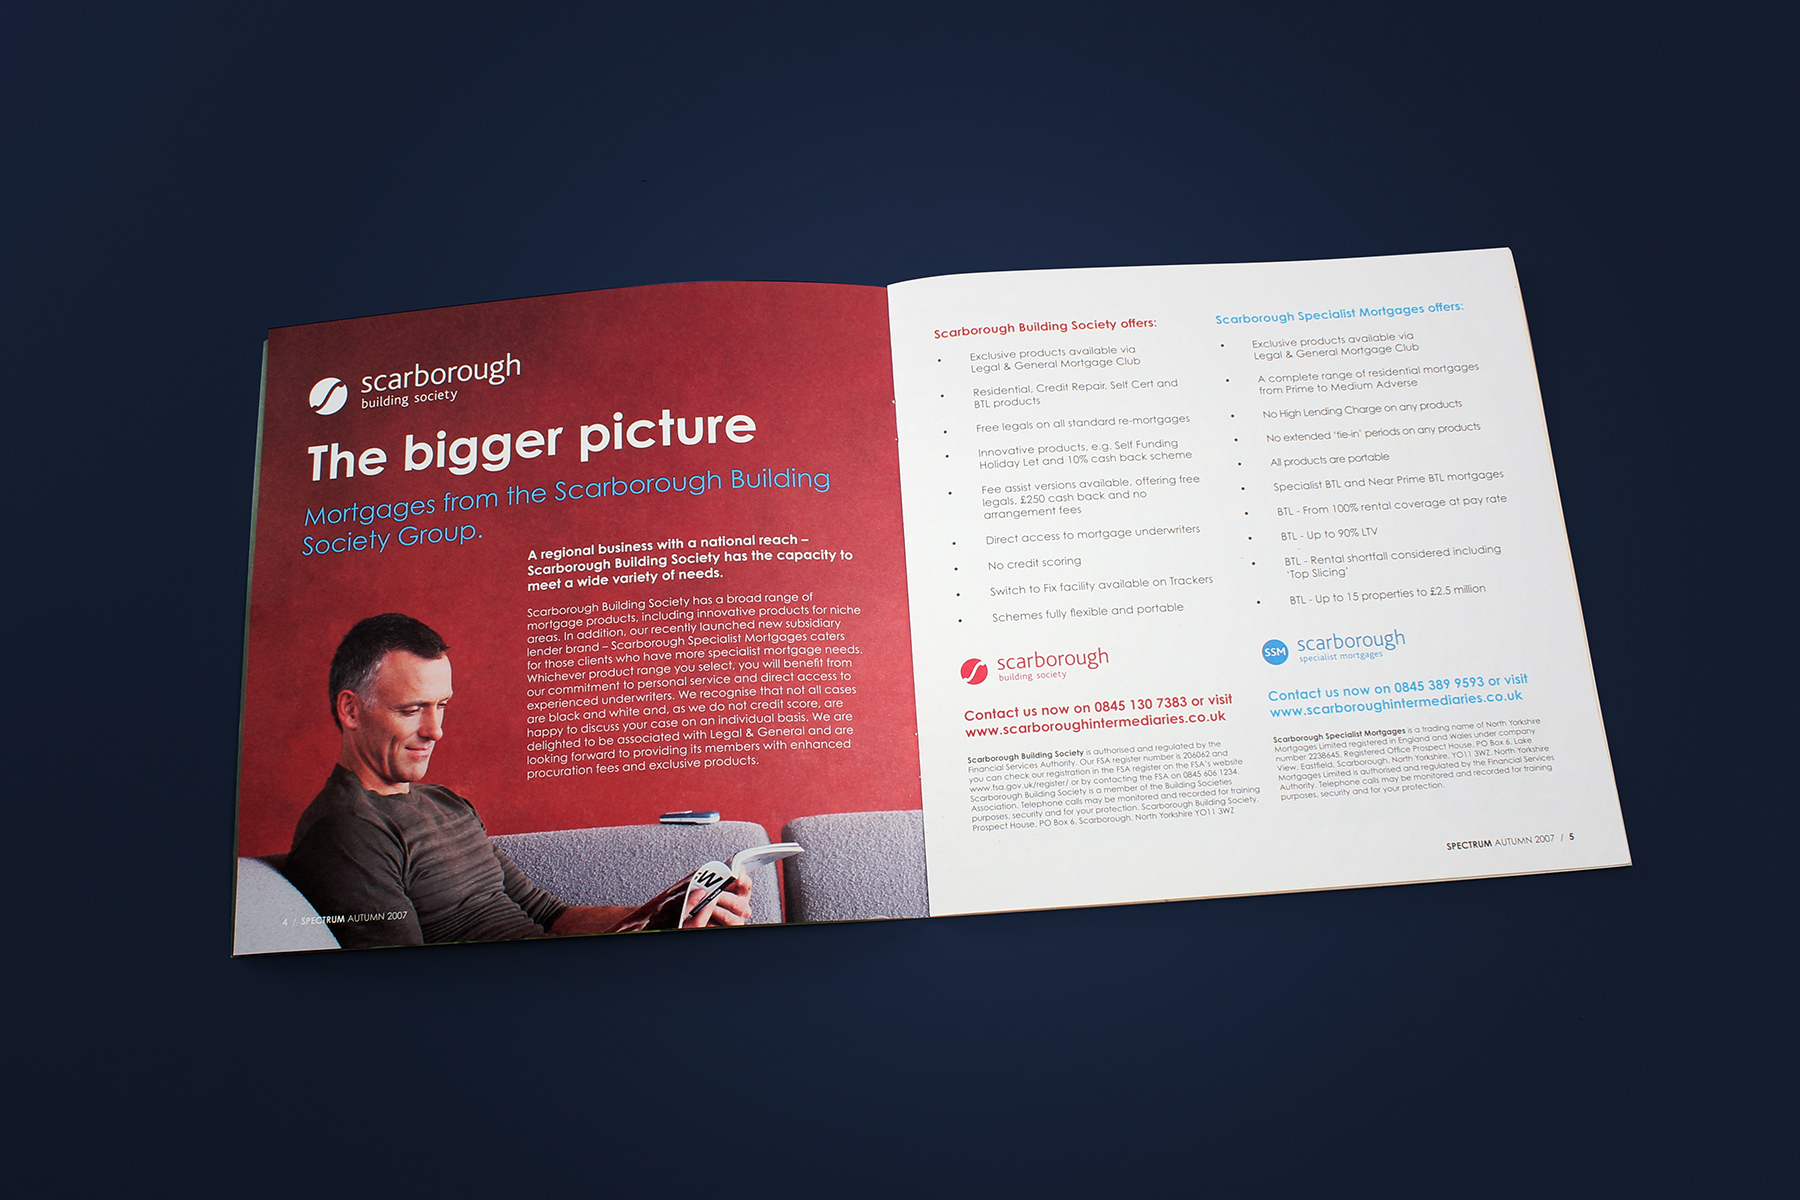 We used combinations of clear white space and people focussed imagery to convey the content in an accessible format.